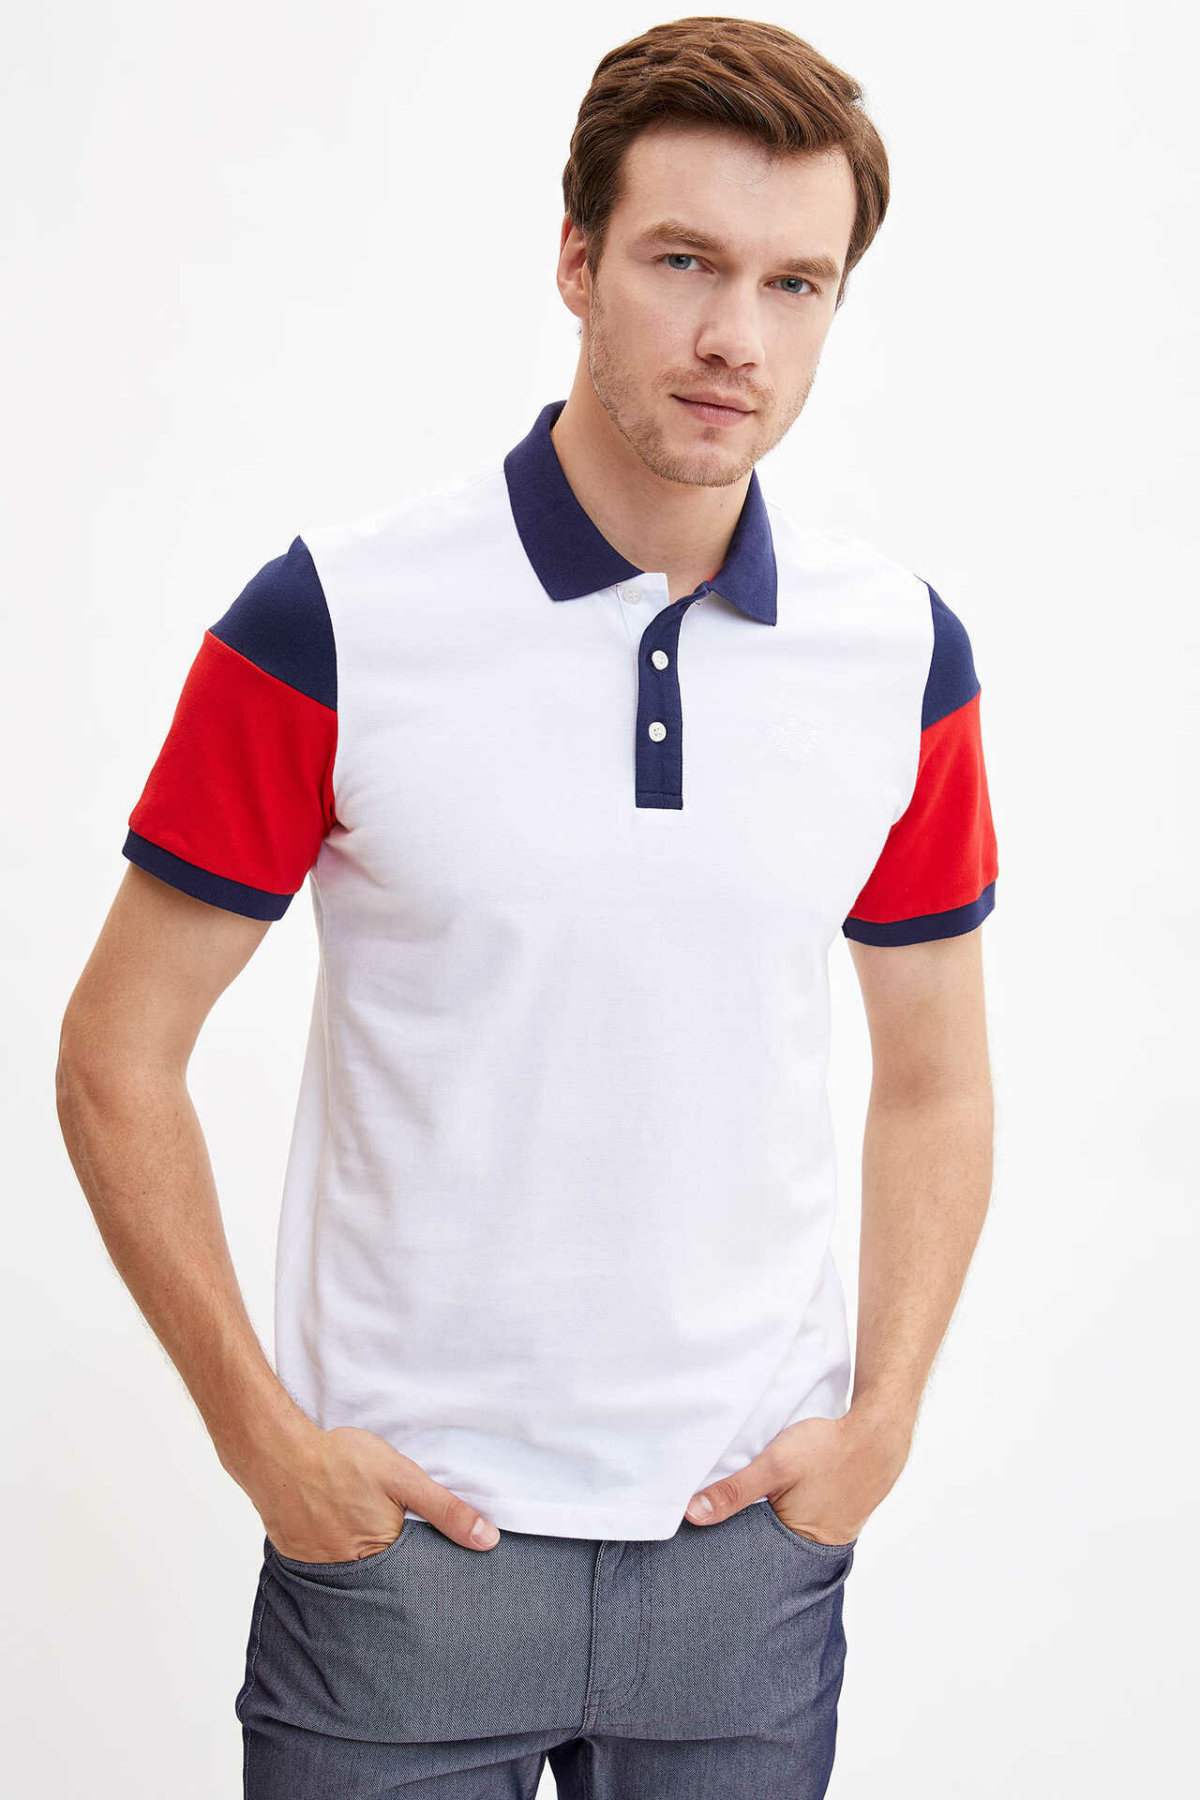 DeFacto Summer Man Fashion Polo Shirt Men's Casual Patchwork Tops Male Cotton Comfort Short Sleeves New - L5009AZ19SM